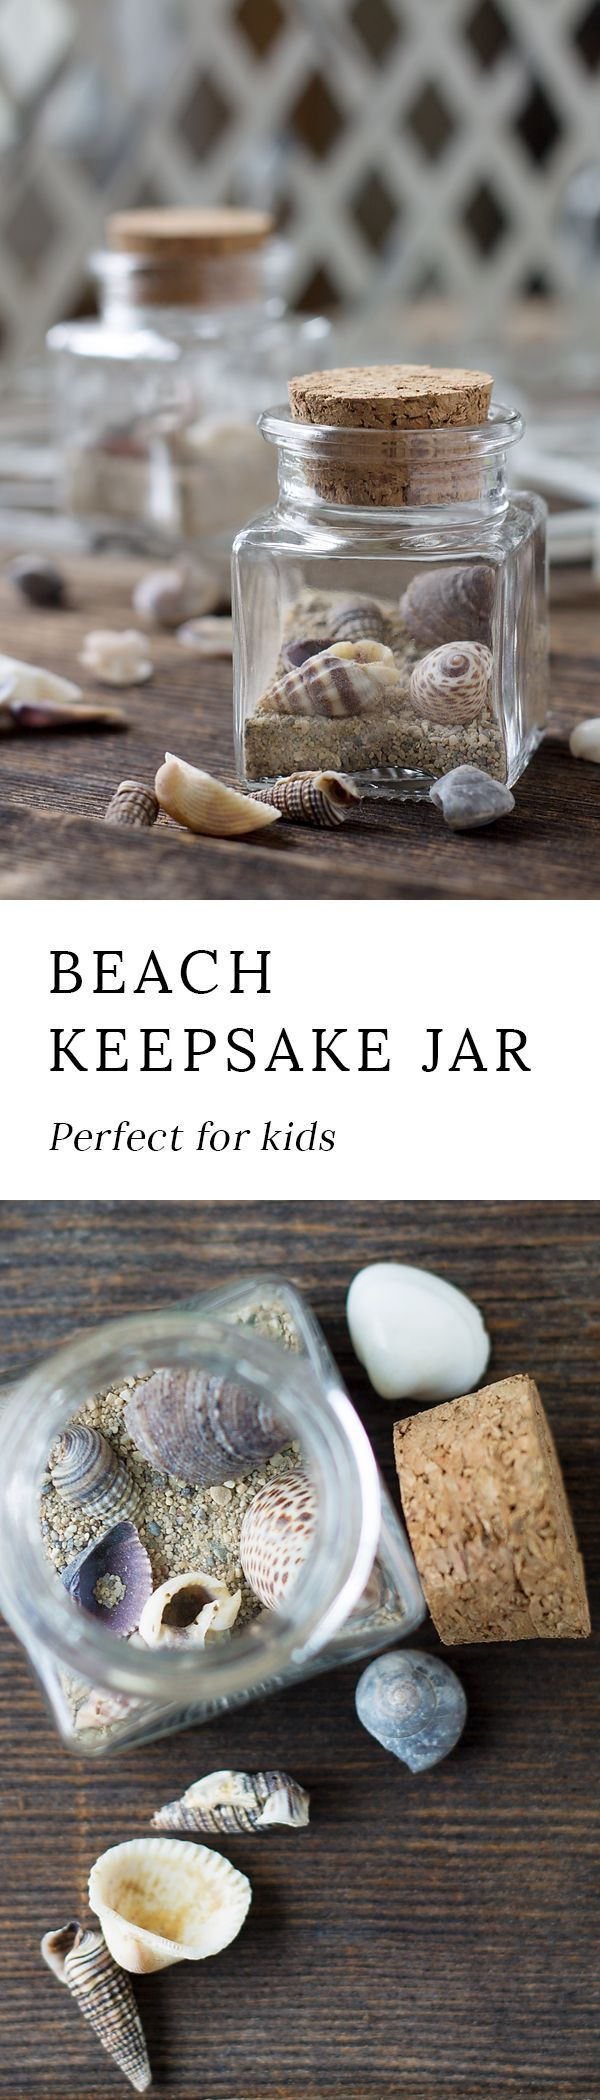 This Simple Beach Keepsake Craft is the perfect DIY souvenir for kids to remember their special seaside adventure! via @https://www.pinterest.com/fireflymudpie/